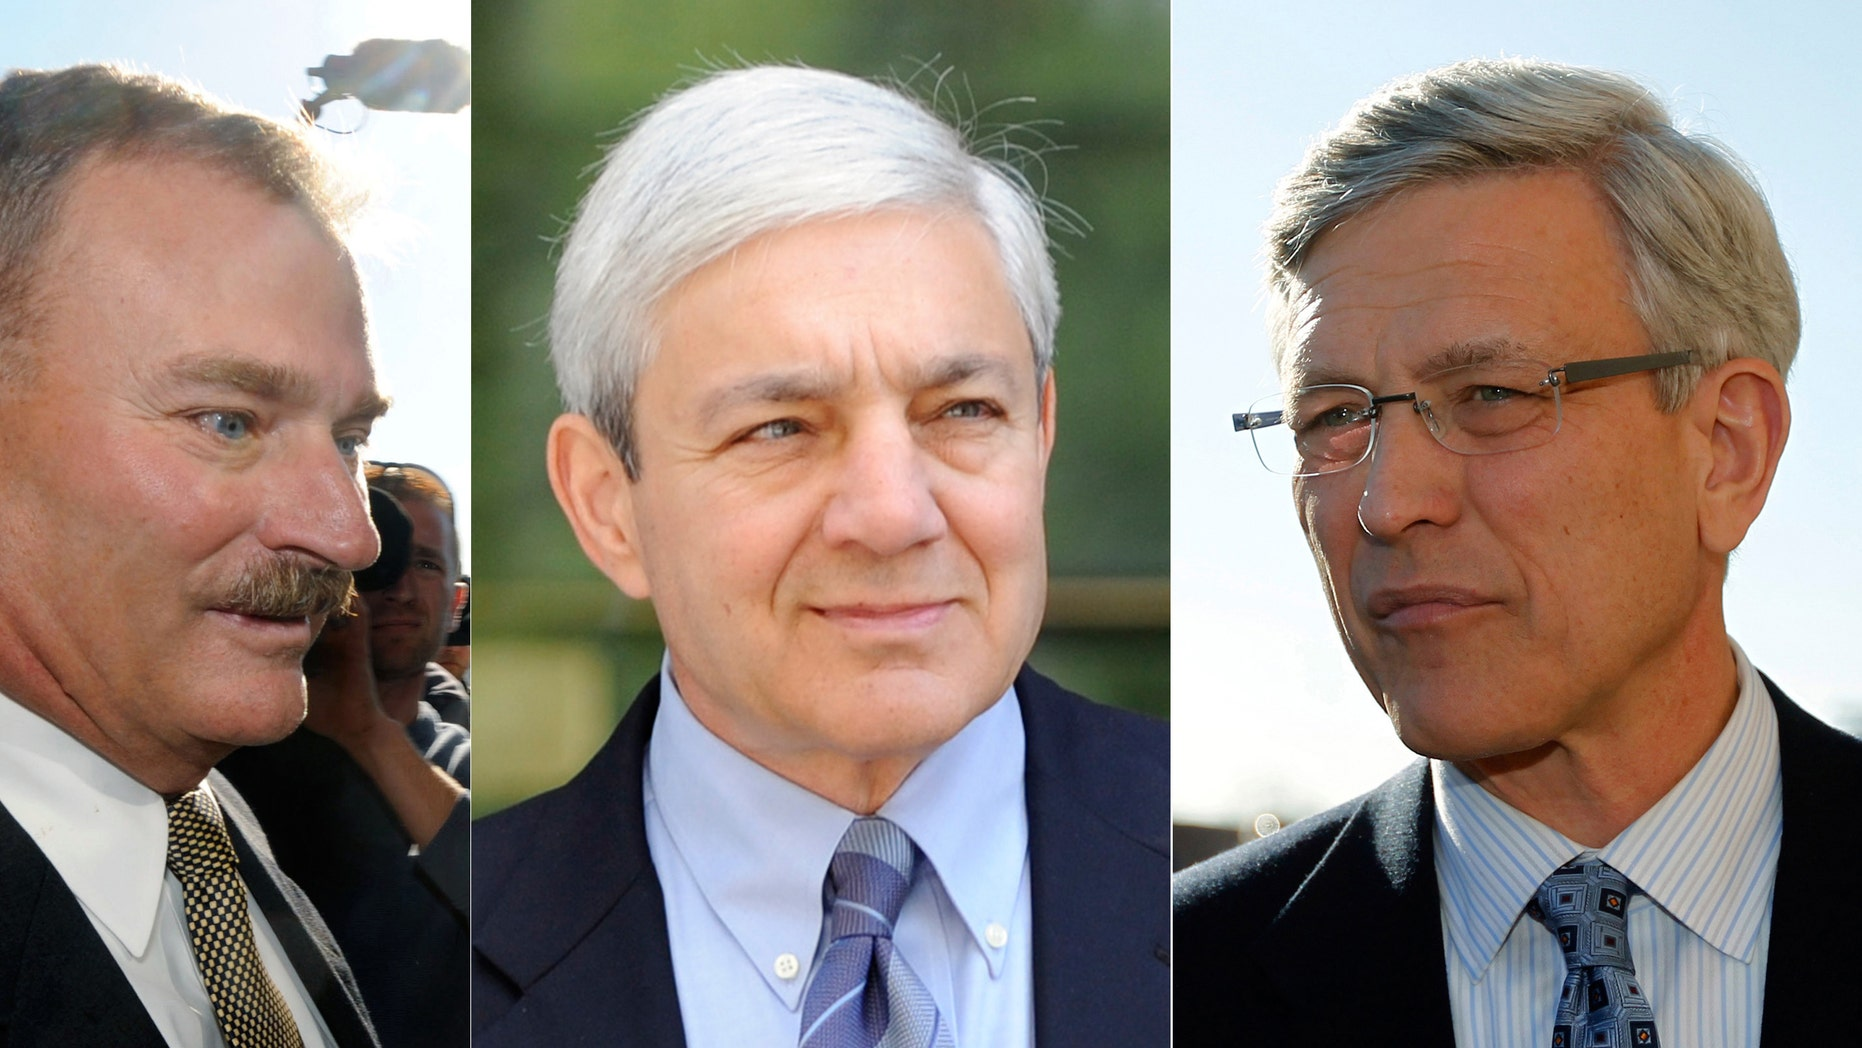 In these Nov. 7, 2011, file photo combination, former Penn State vice president Gary Schultz, left, and former Penn State director of athletics Tim Curley, right, and on July 29, 2013, former Penn State president Graham Spanier, center, are seen in Harrisburg, Pa.